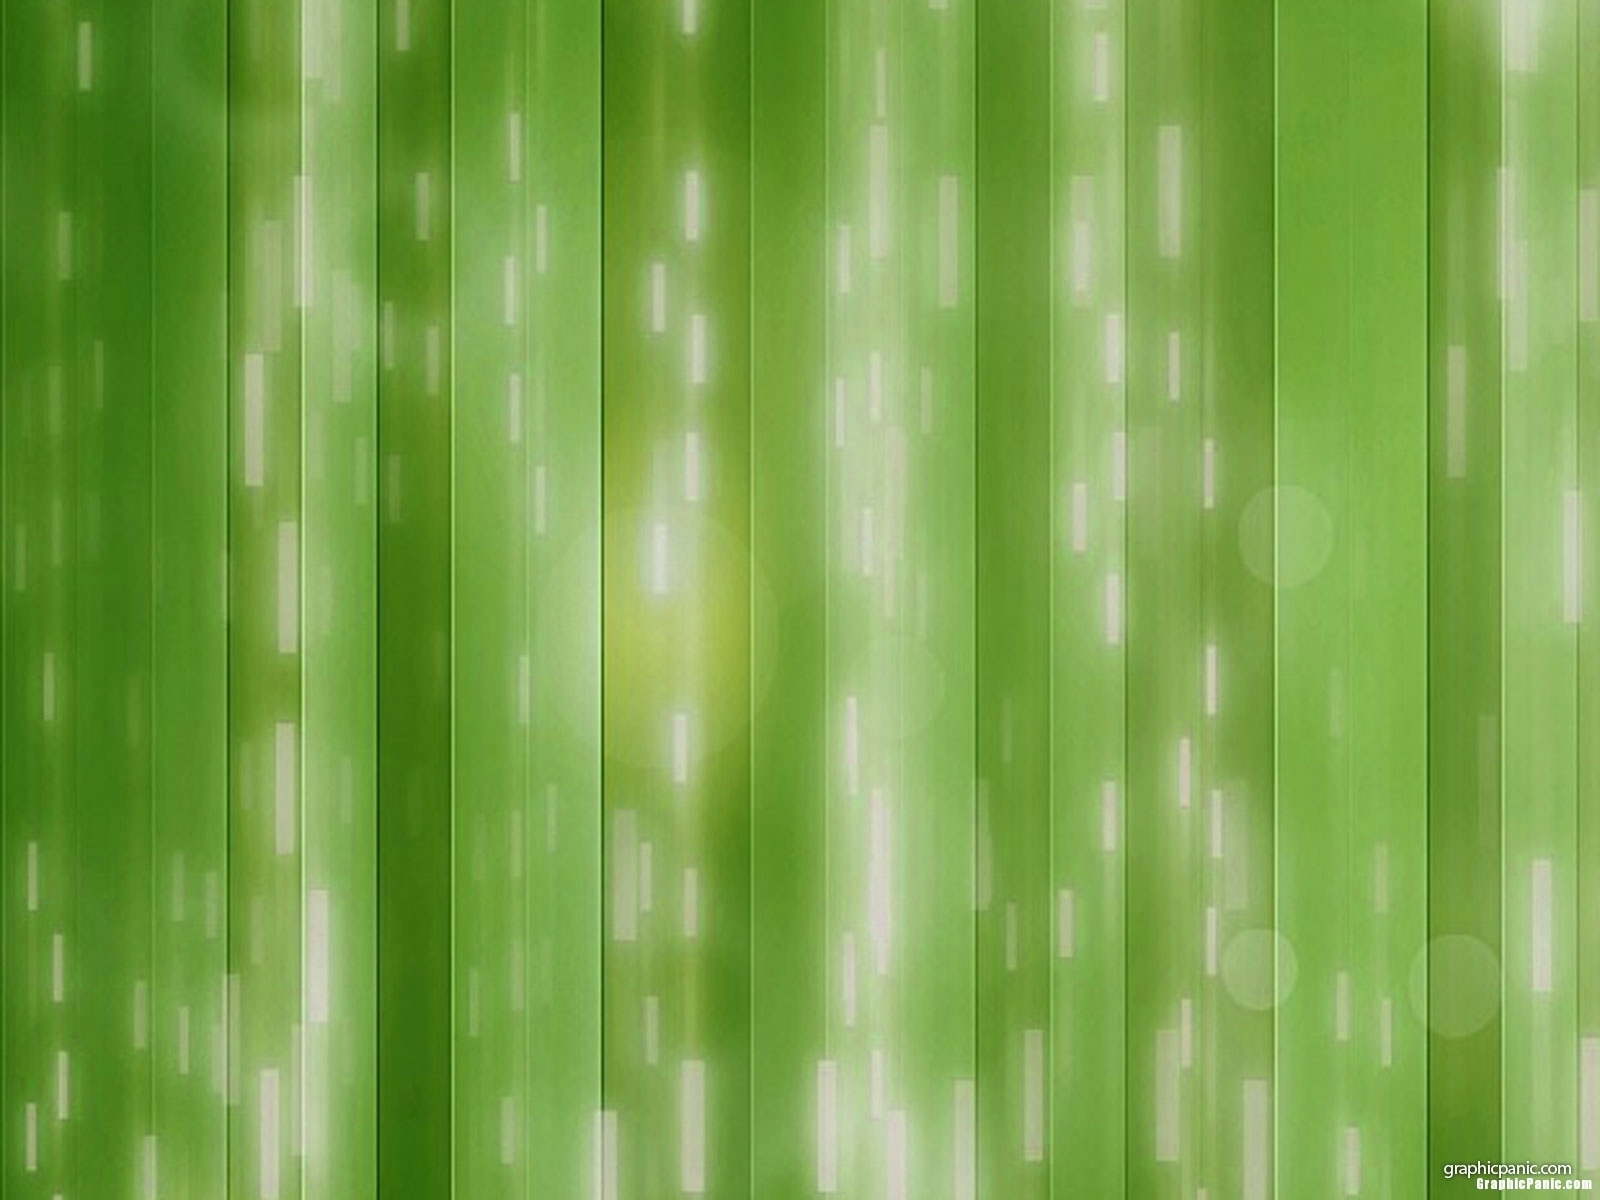 nature abstract hd background